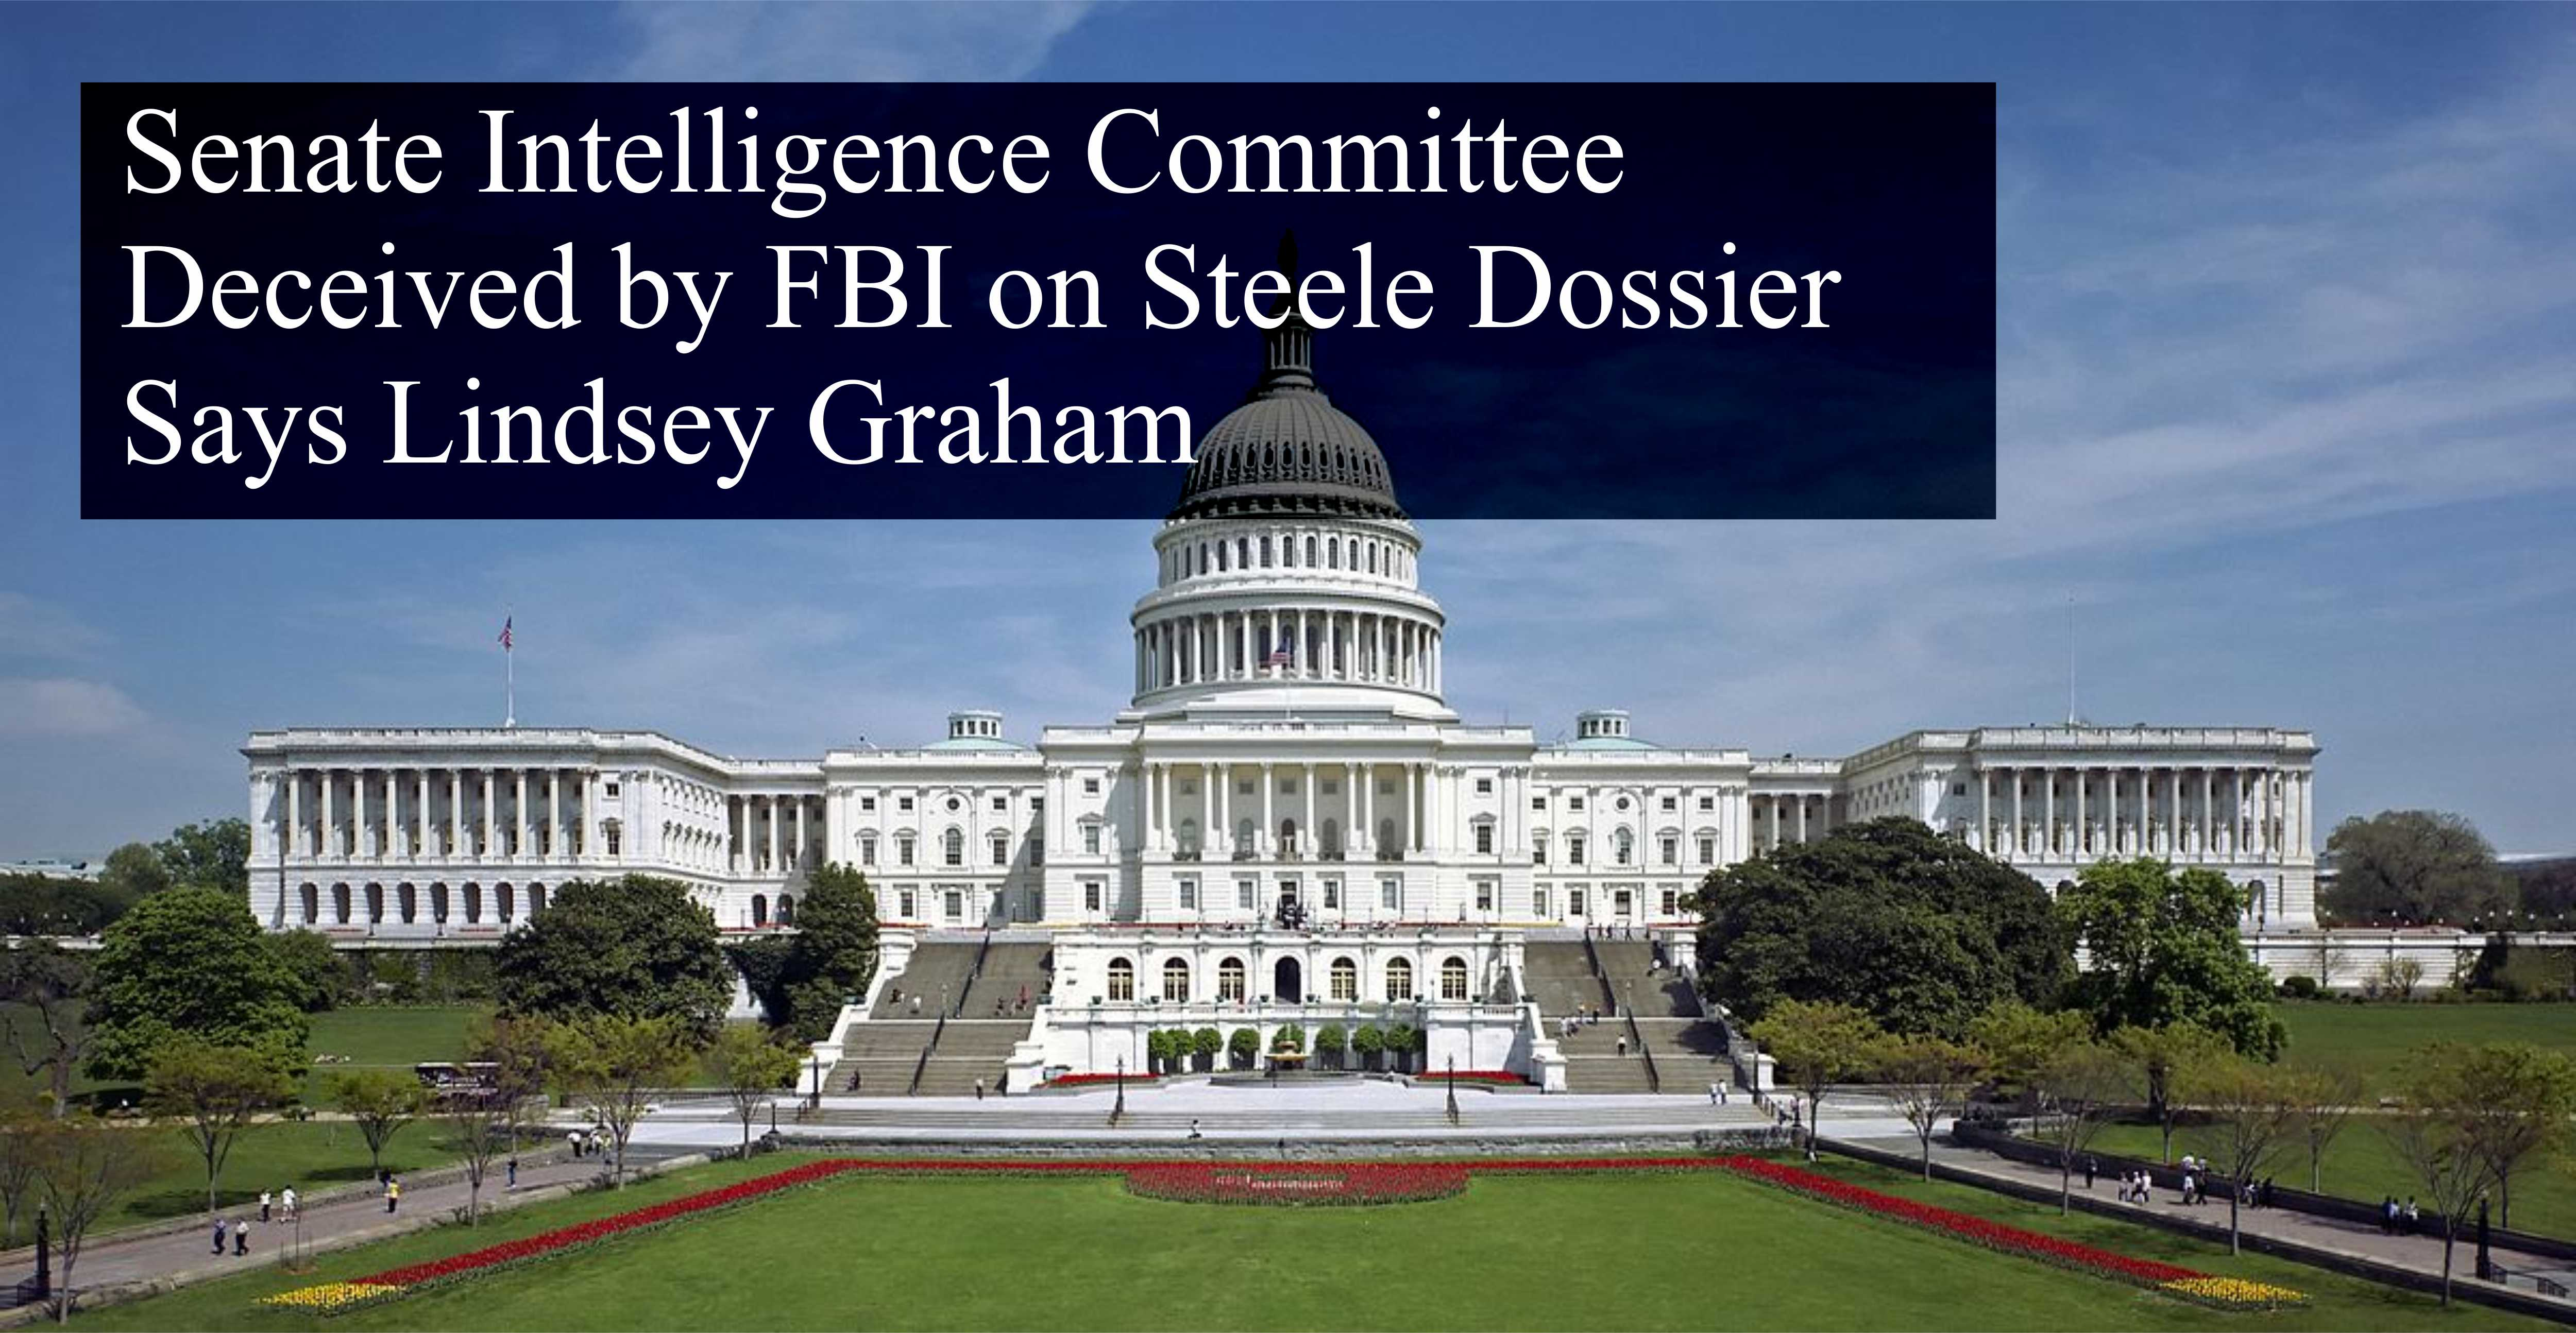 Newly Declassified Document : FBI Misled Congress On Reliability Of Steel Dossier